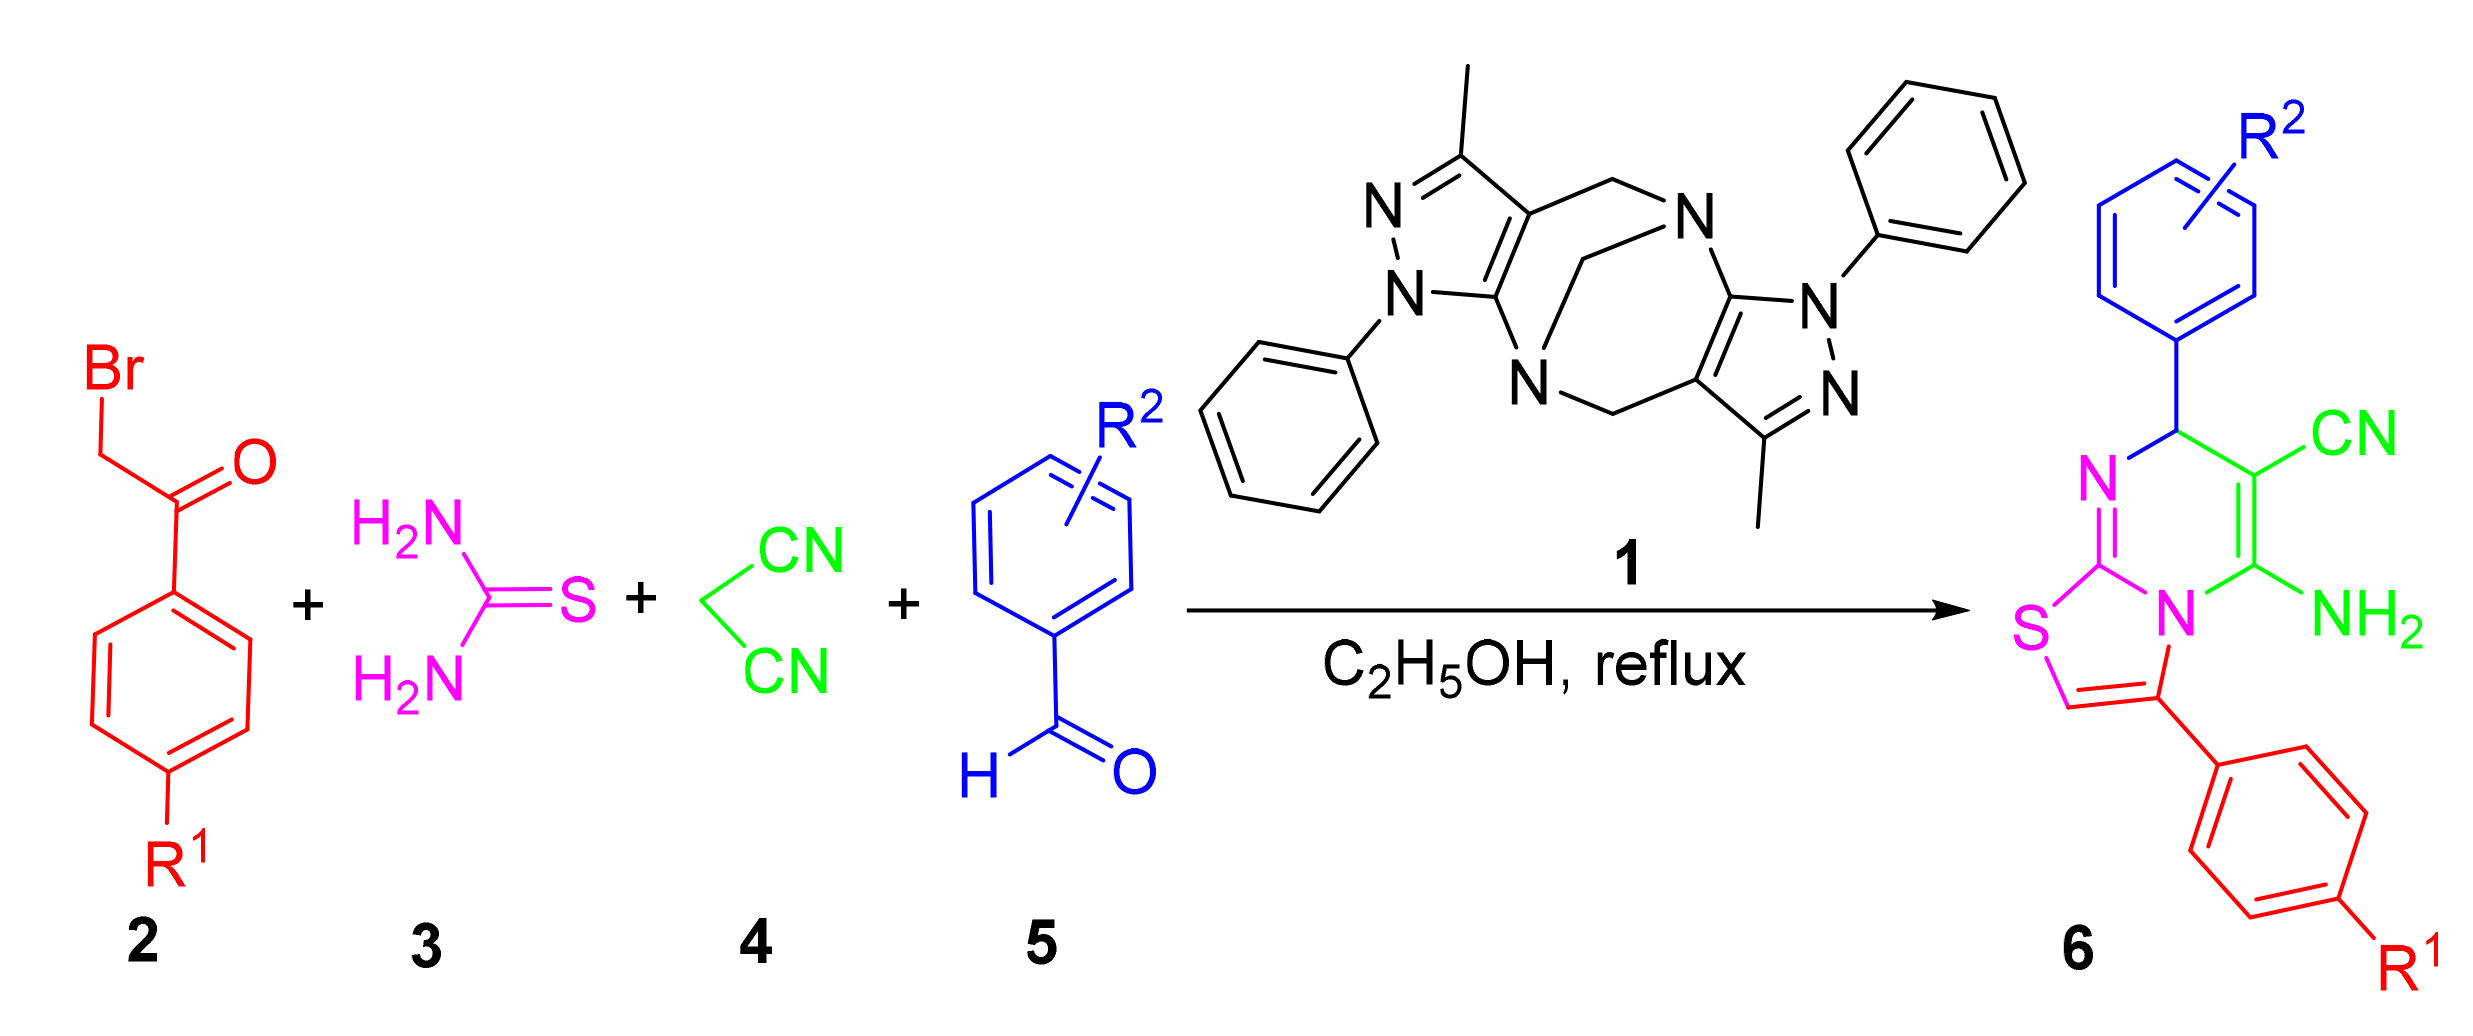 Synthesis and Biological Evaluation of Polysubstituted 5-amino-3,7-diphenyl-7<i>H</i>-thiazolo[3,2-<i>a</i>]pyrimidine-6-carbonitriles